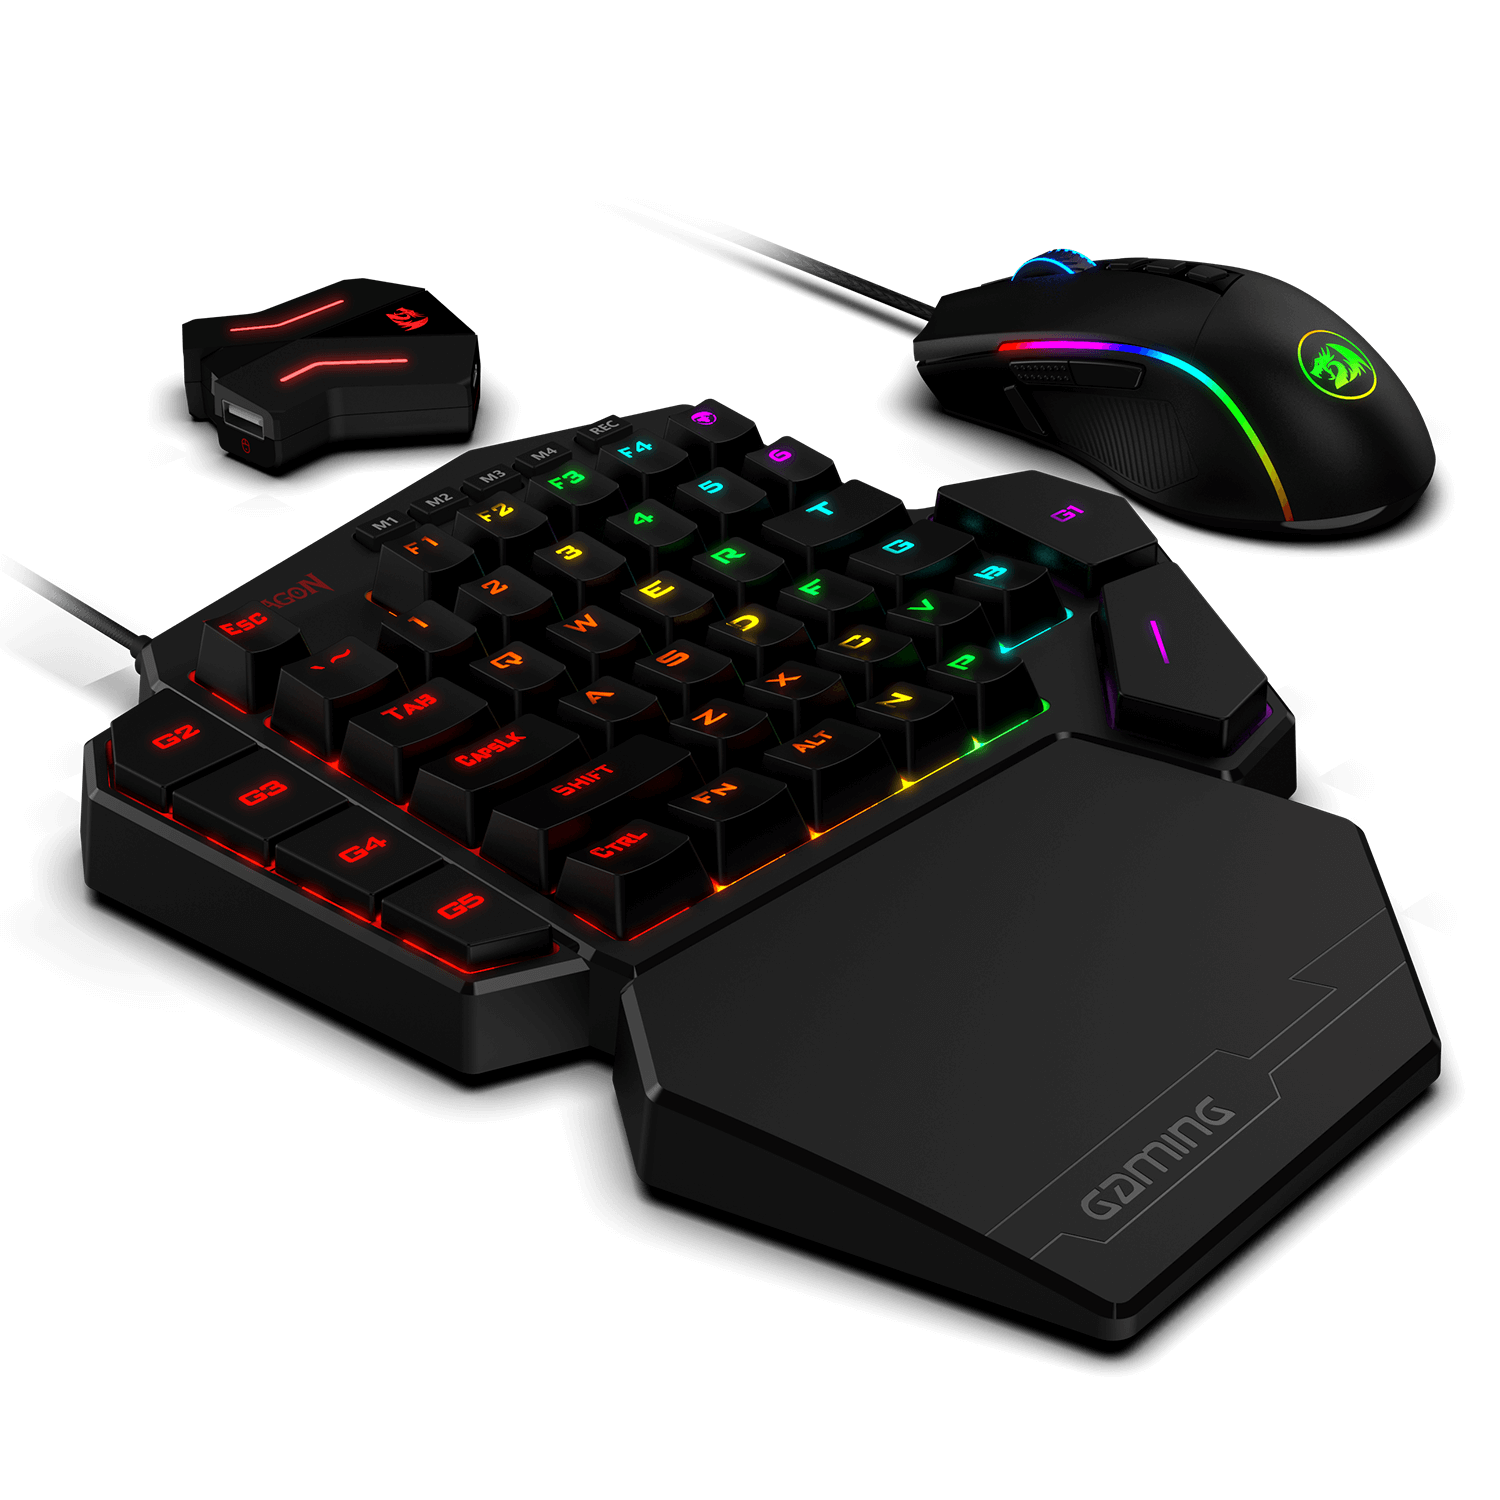 Redragon K585 One-handed RGB Gaming Keyboard and M721-Pro Mouse ps4 adapterCombo